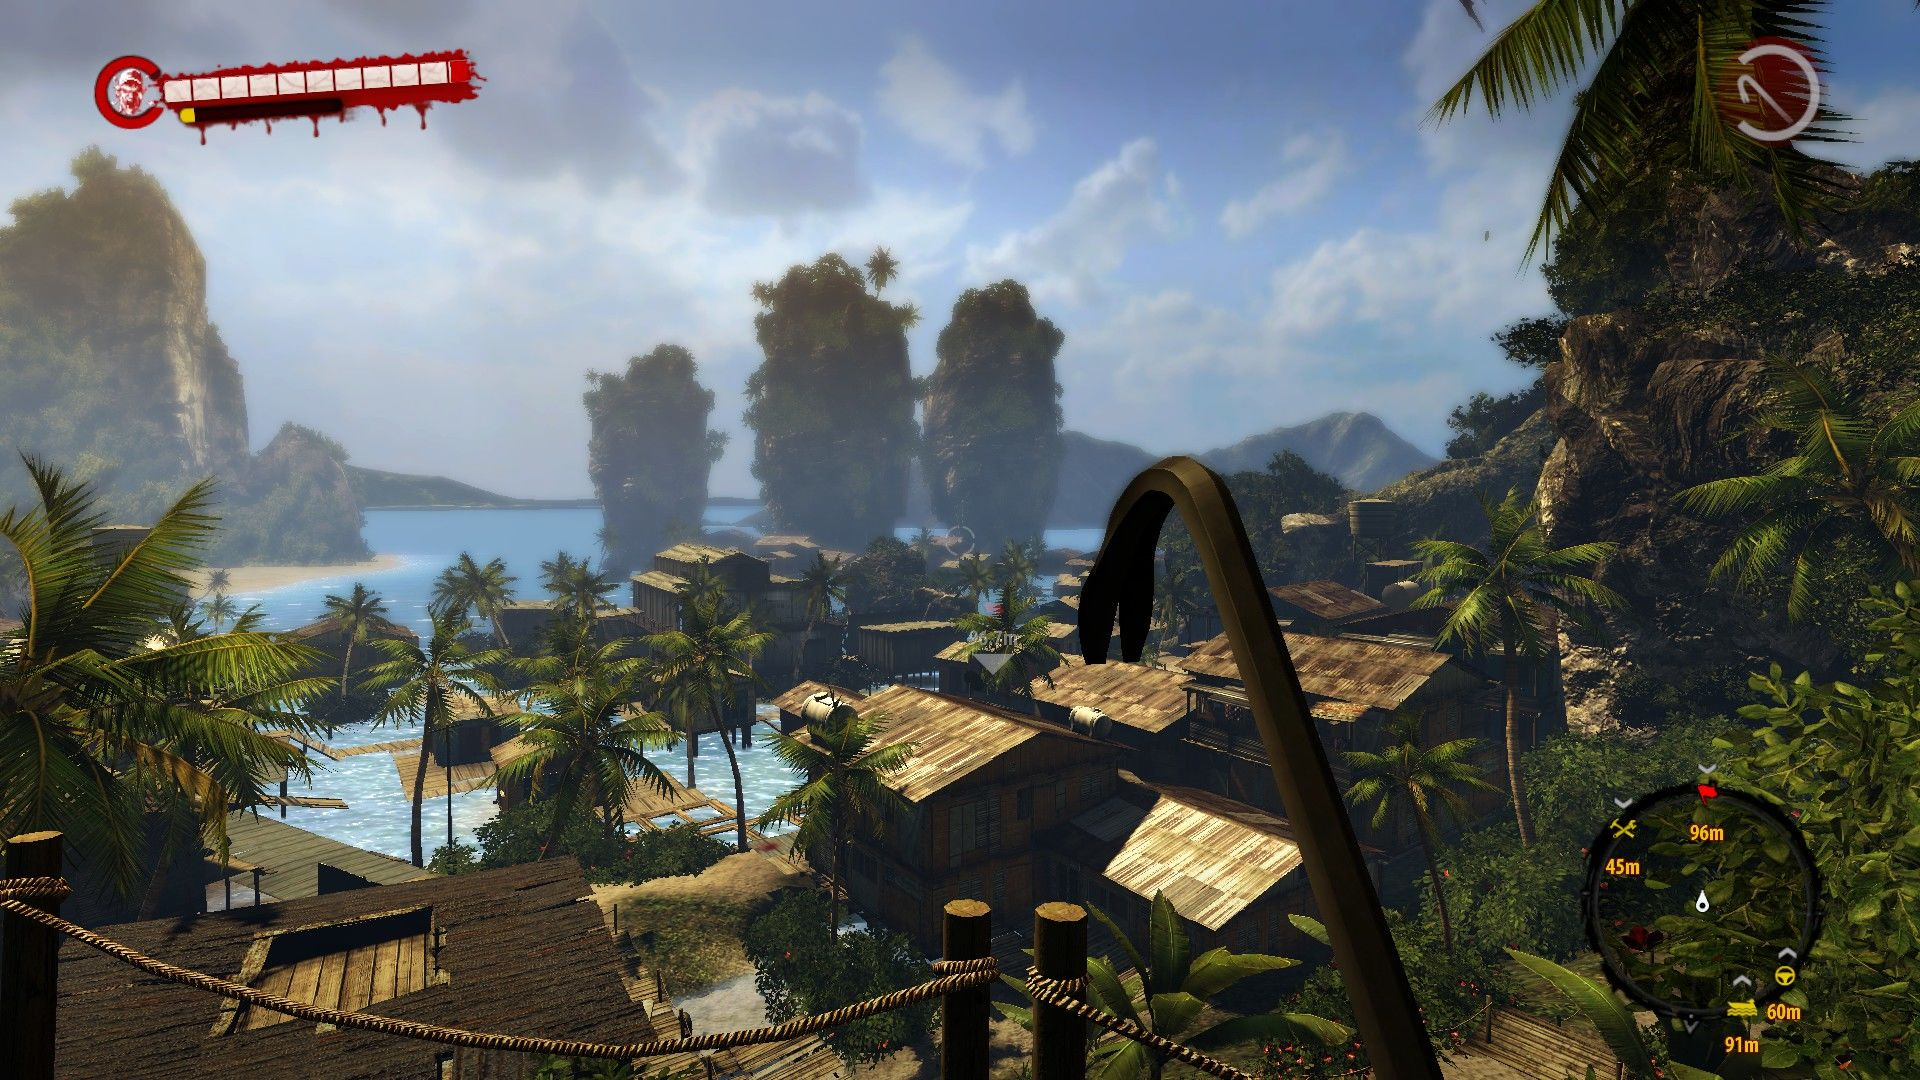 https://www.mobygames.com/images/shots/l/768549-dead-island-riptide-windows-screenshot-like-gordon-freeman.jpg